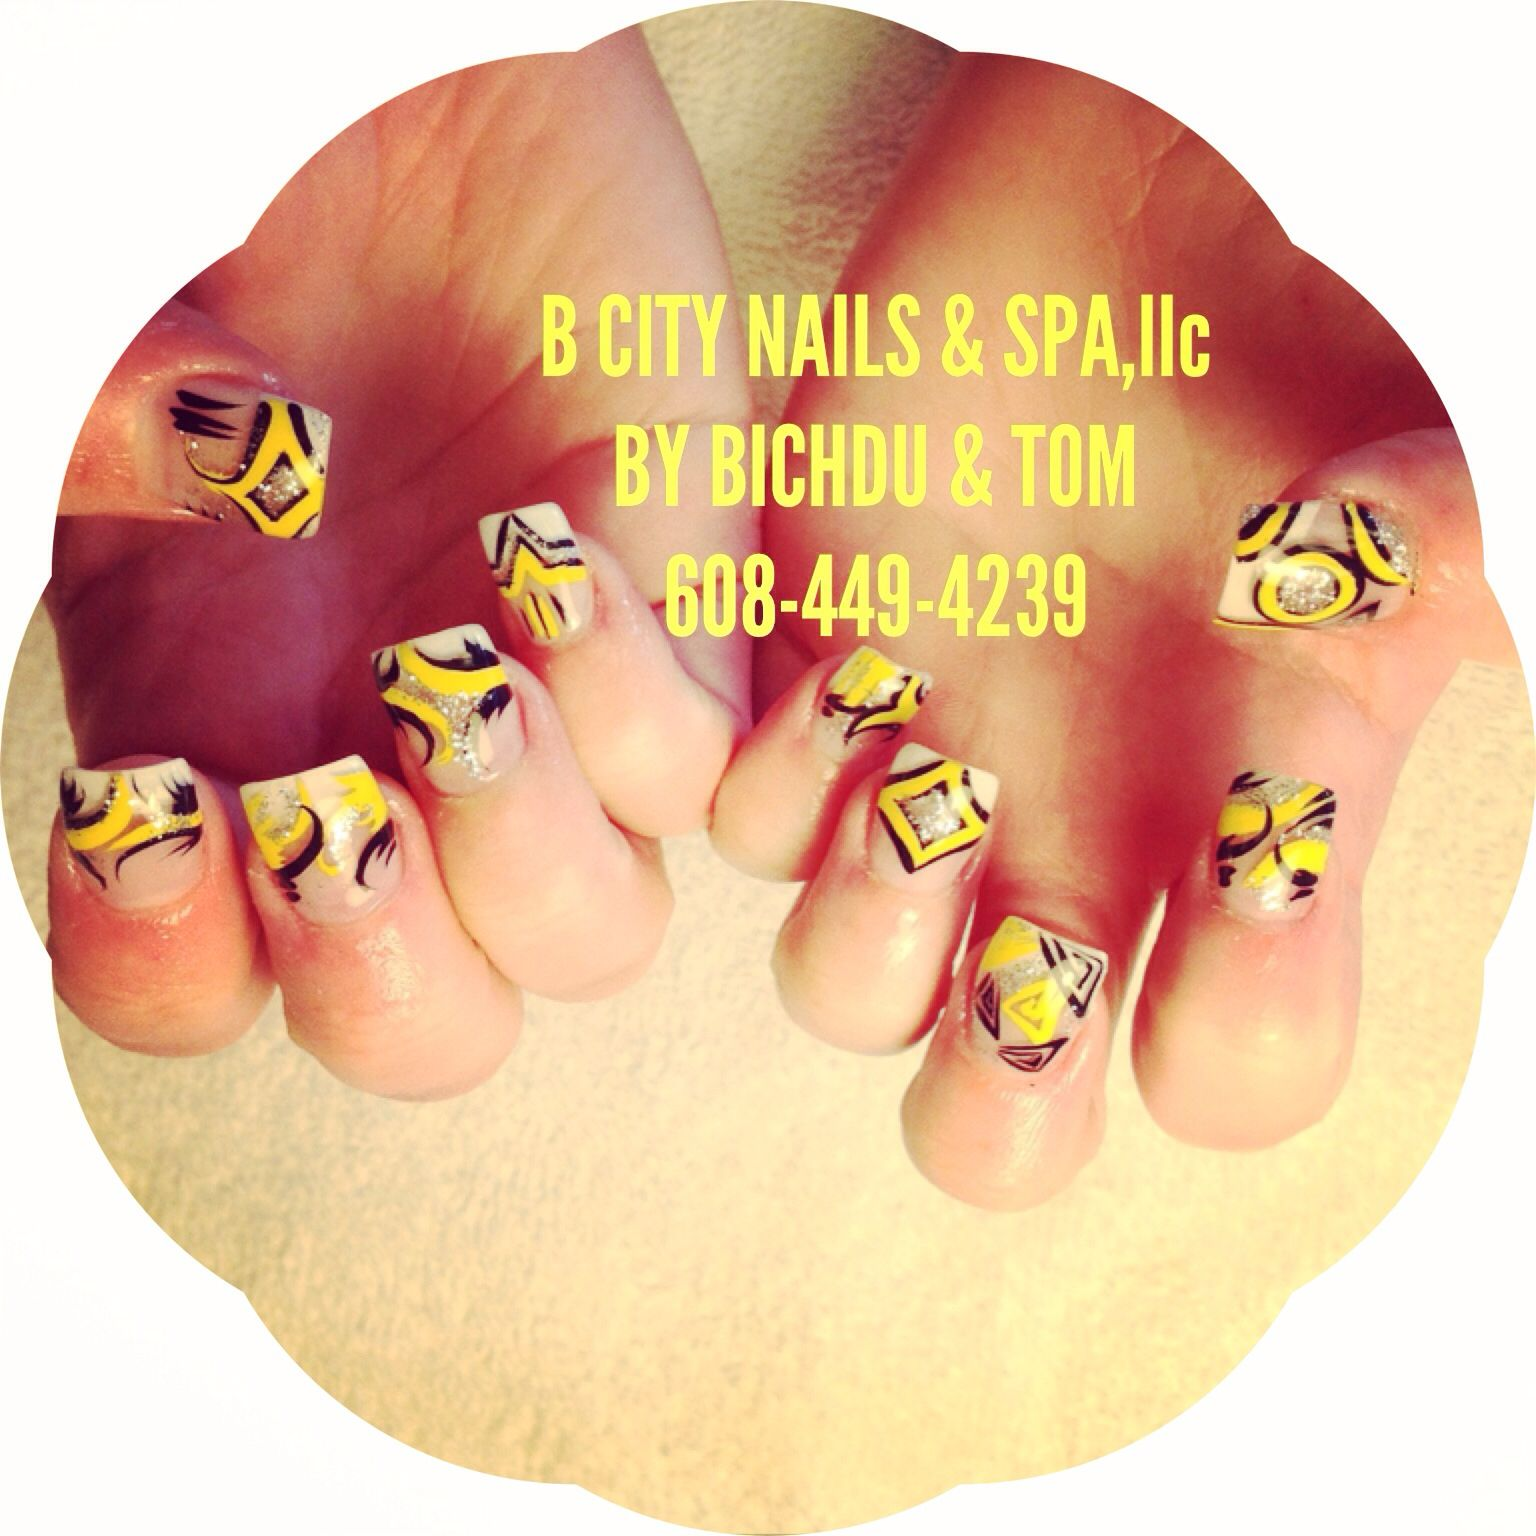 #B CITY NAILS & SPA,llc 2632 PRAIRIE AVE, BELOIT WI 53511  MON- SAT : 9:30am - 7:30 pm SUNDAY : 11:00 am -5:00 pm  608-313-8485  or 608-449-4239 STOP IN LET US DO YOUR NAILS